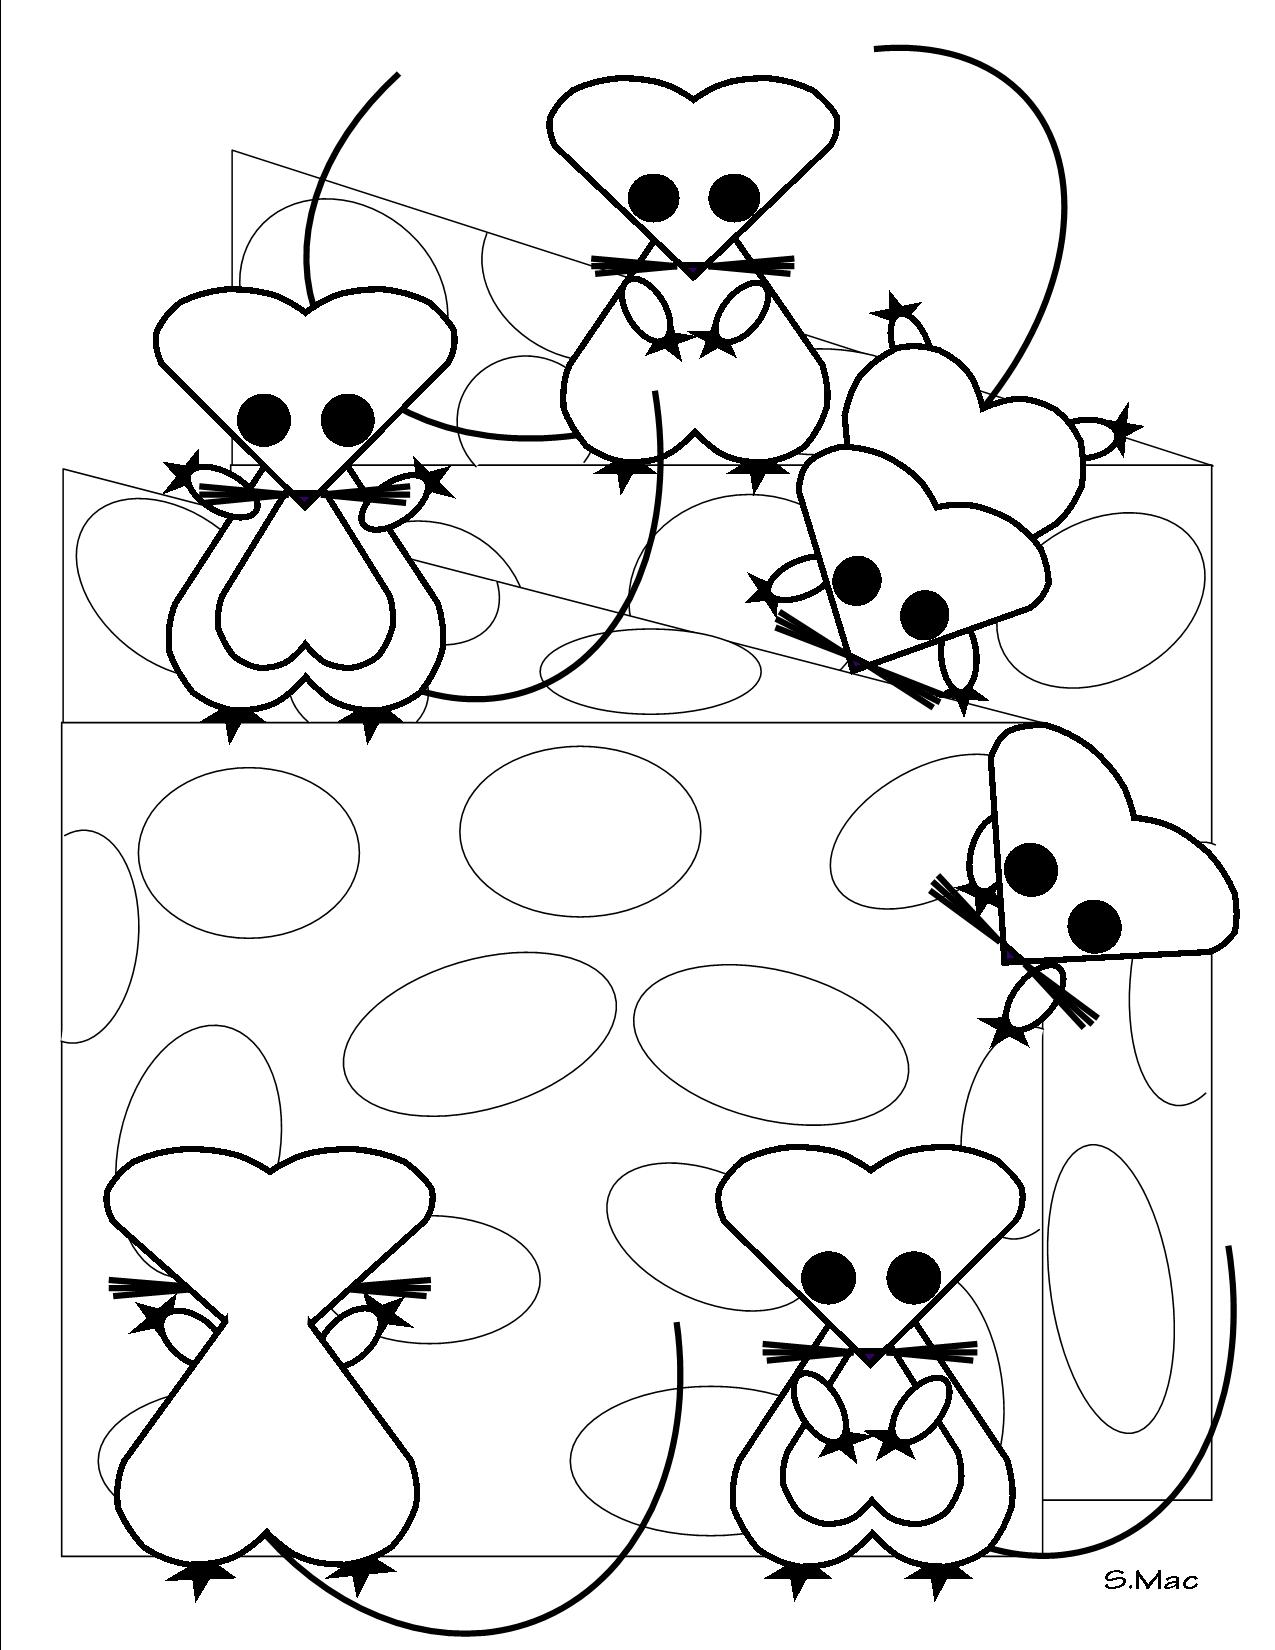 mouse coloring page printable mouse coloring pages for kids cool2bkids mouse page coloring